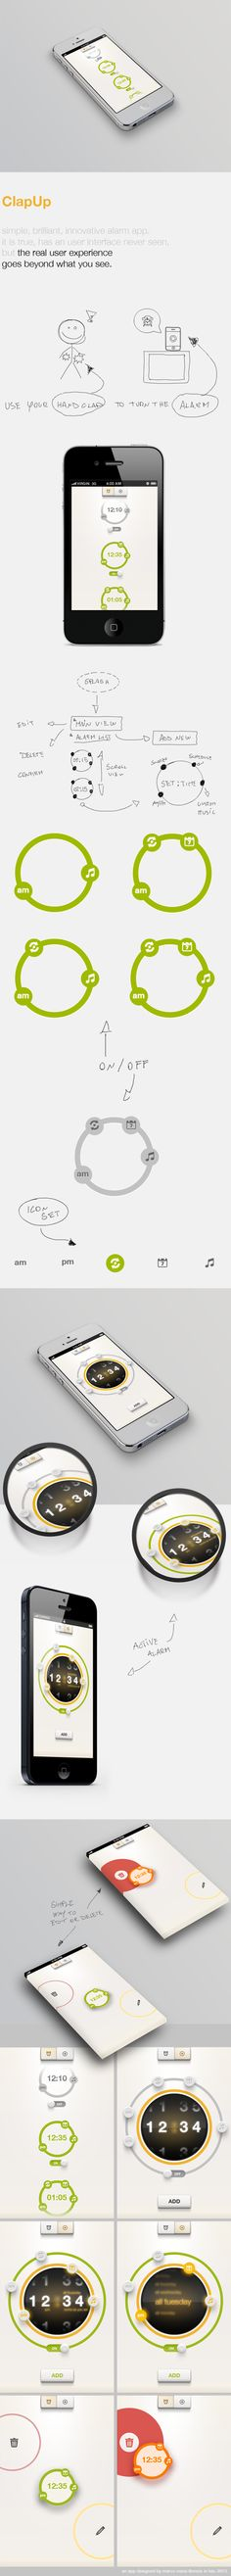 ClapUp - iOS simple and brillant alarm's App | Designer: Marco Nenzi  Also very nice illustrations explaining the concept!